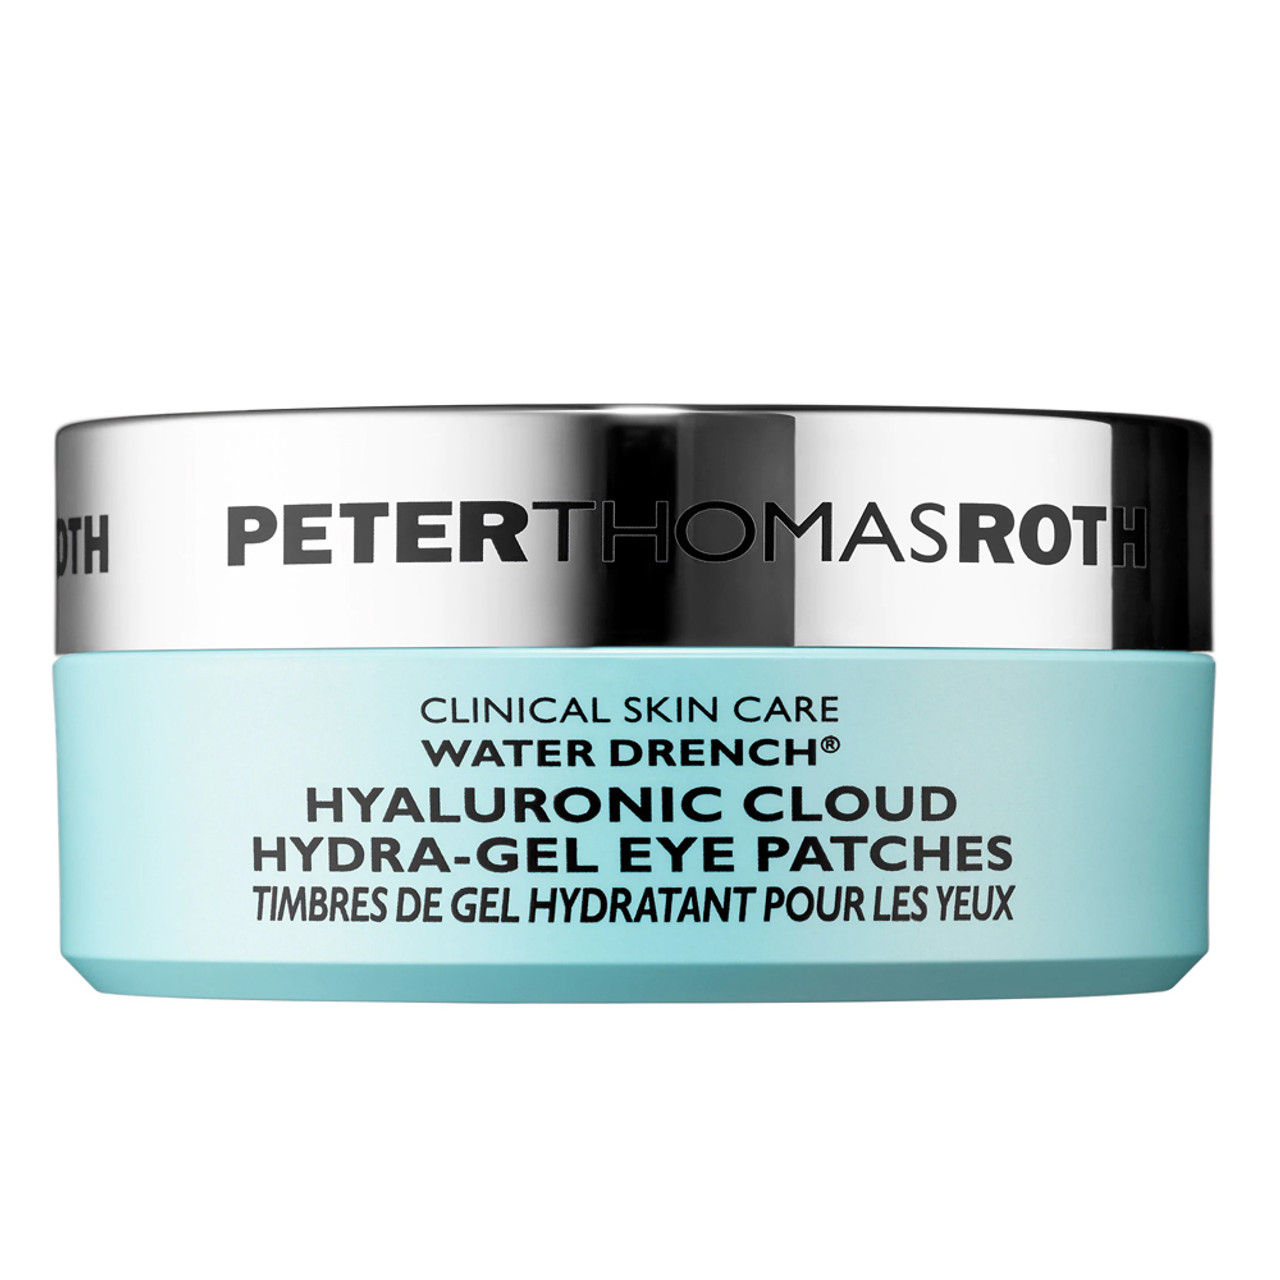 Peter Thomas Roth Hyaluronic Cloud Hydra-Gel Eye Patches